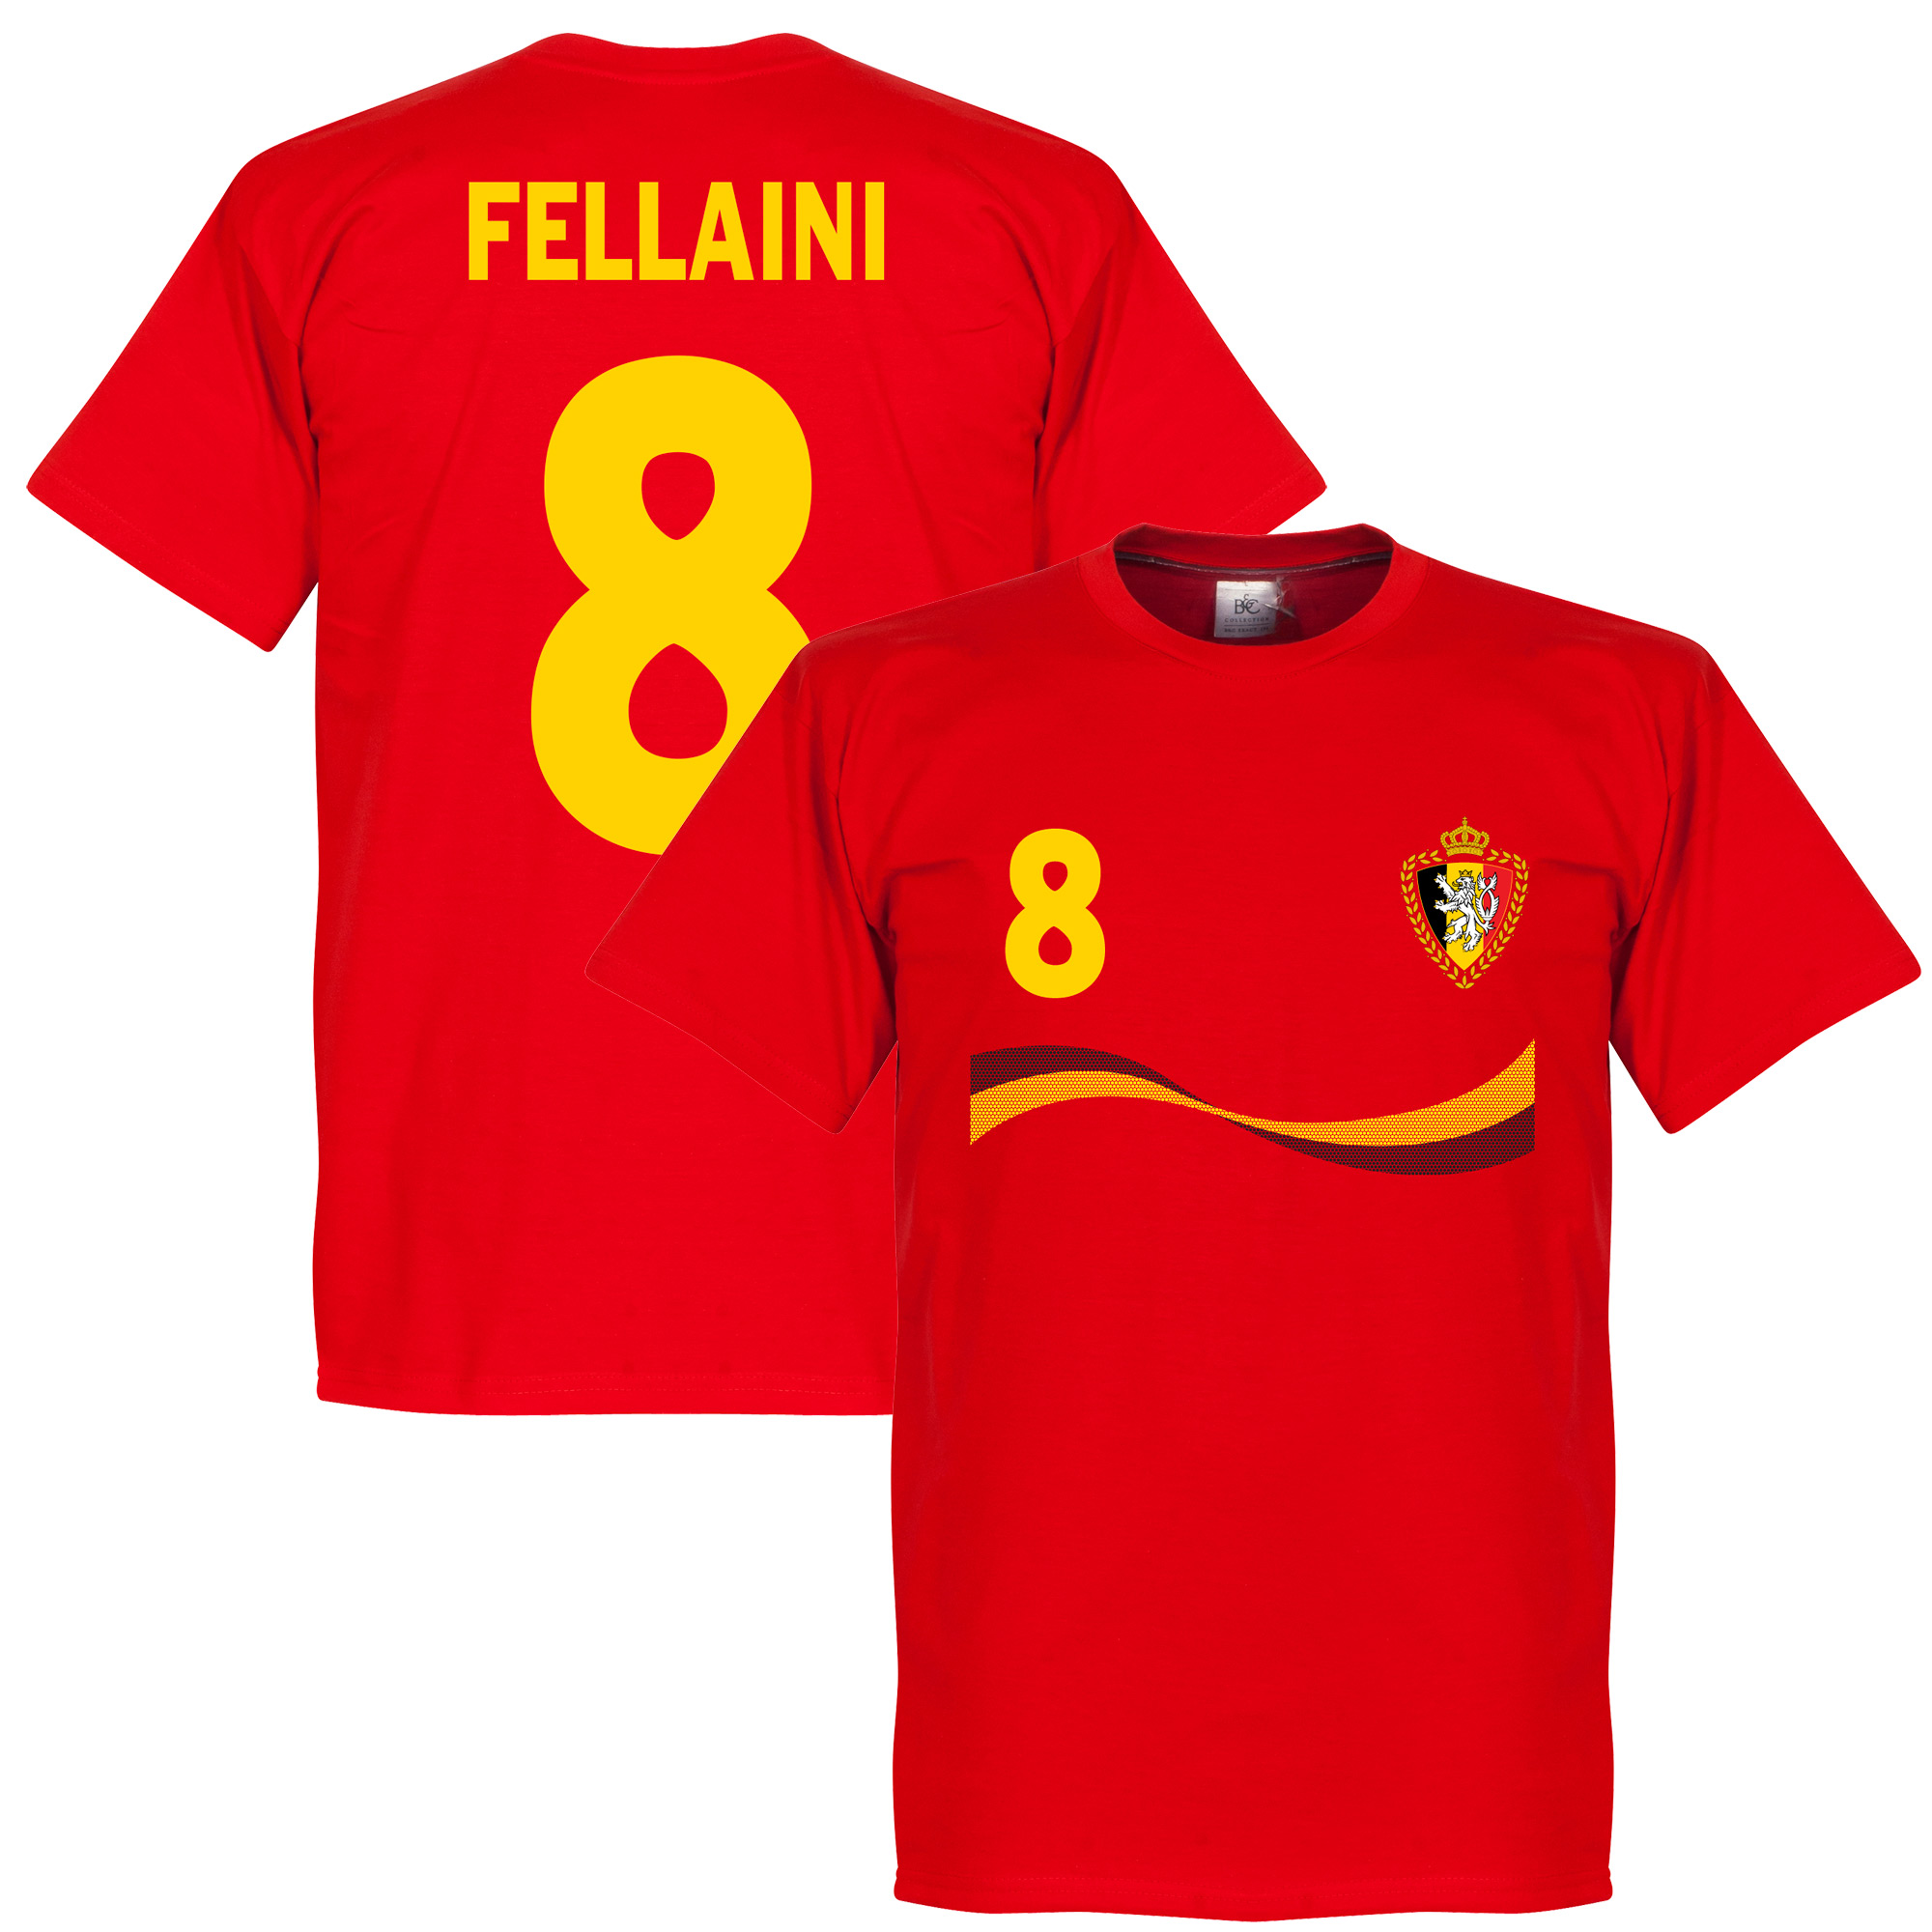 Belgium Fellaini Tee - Red - XXXL